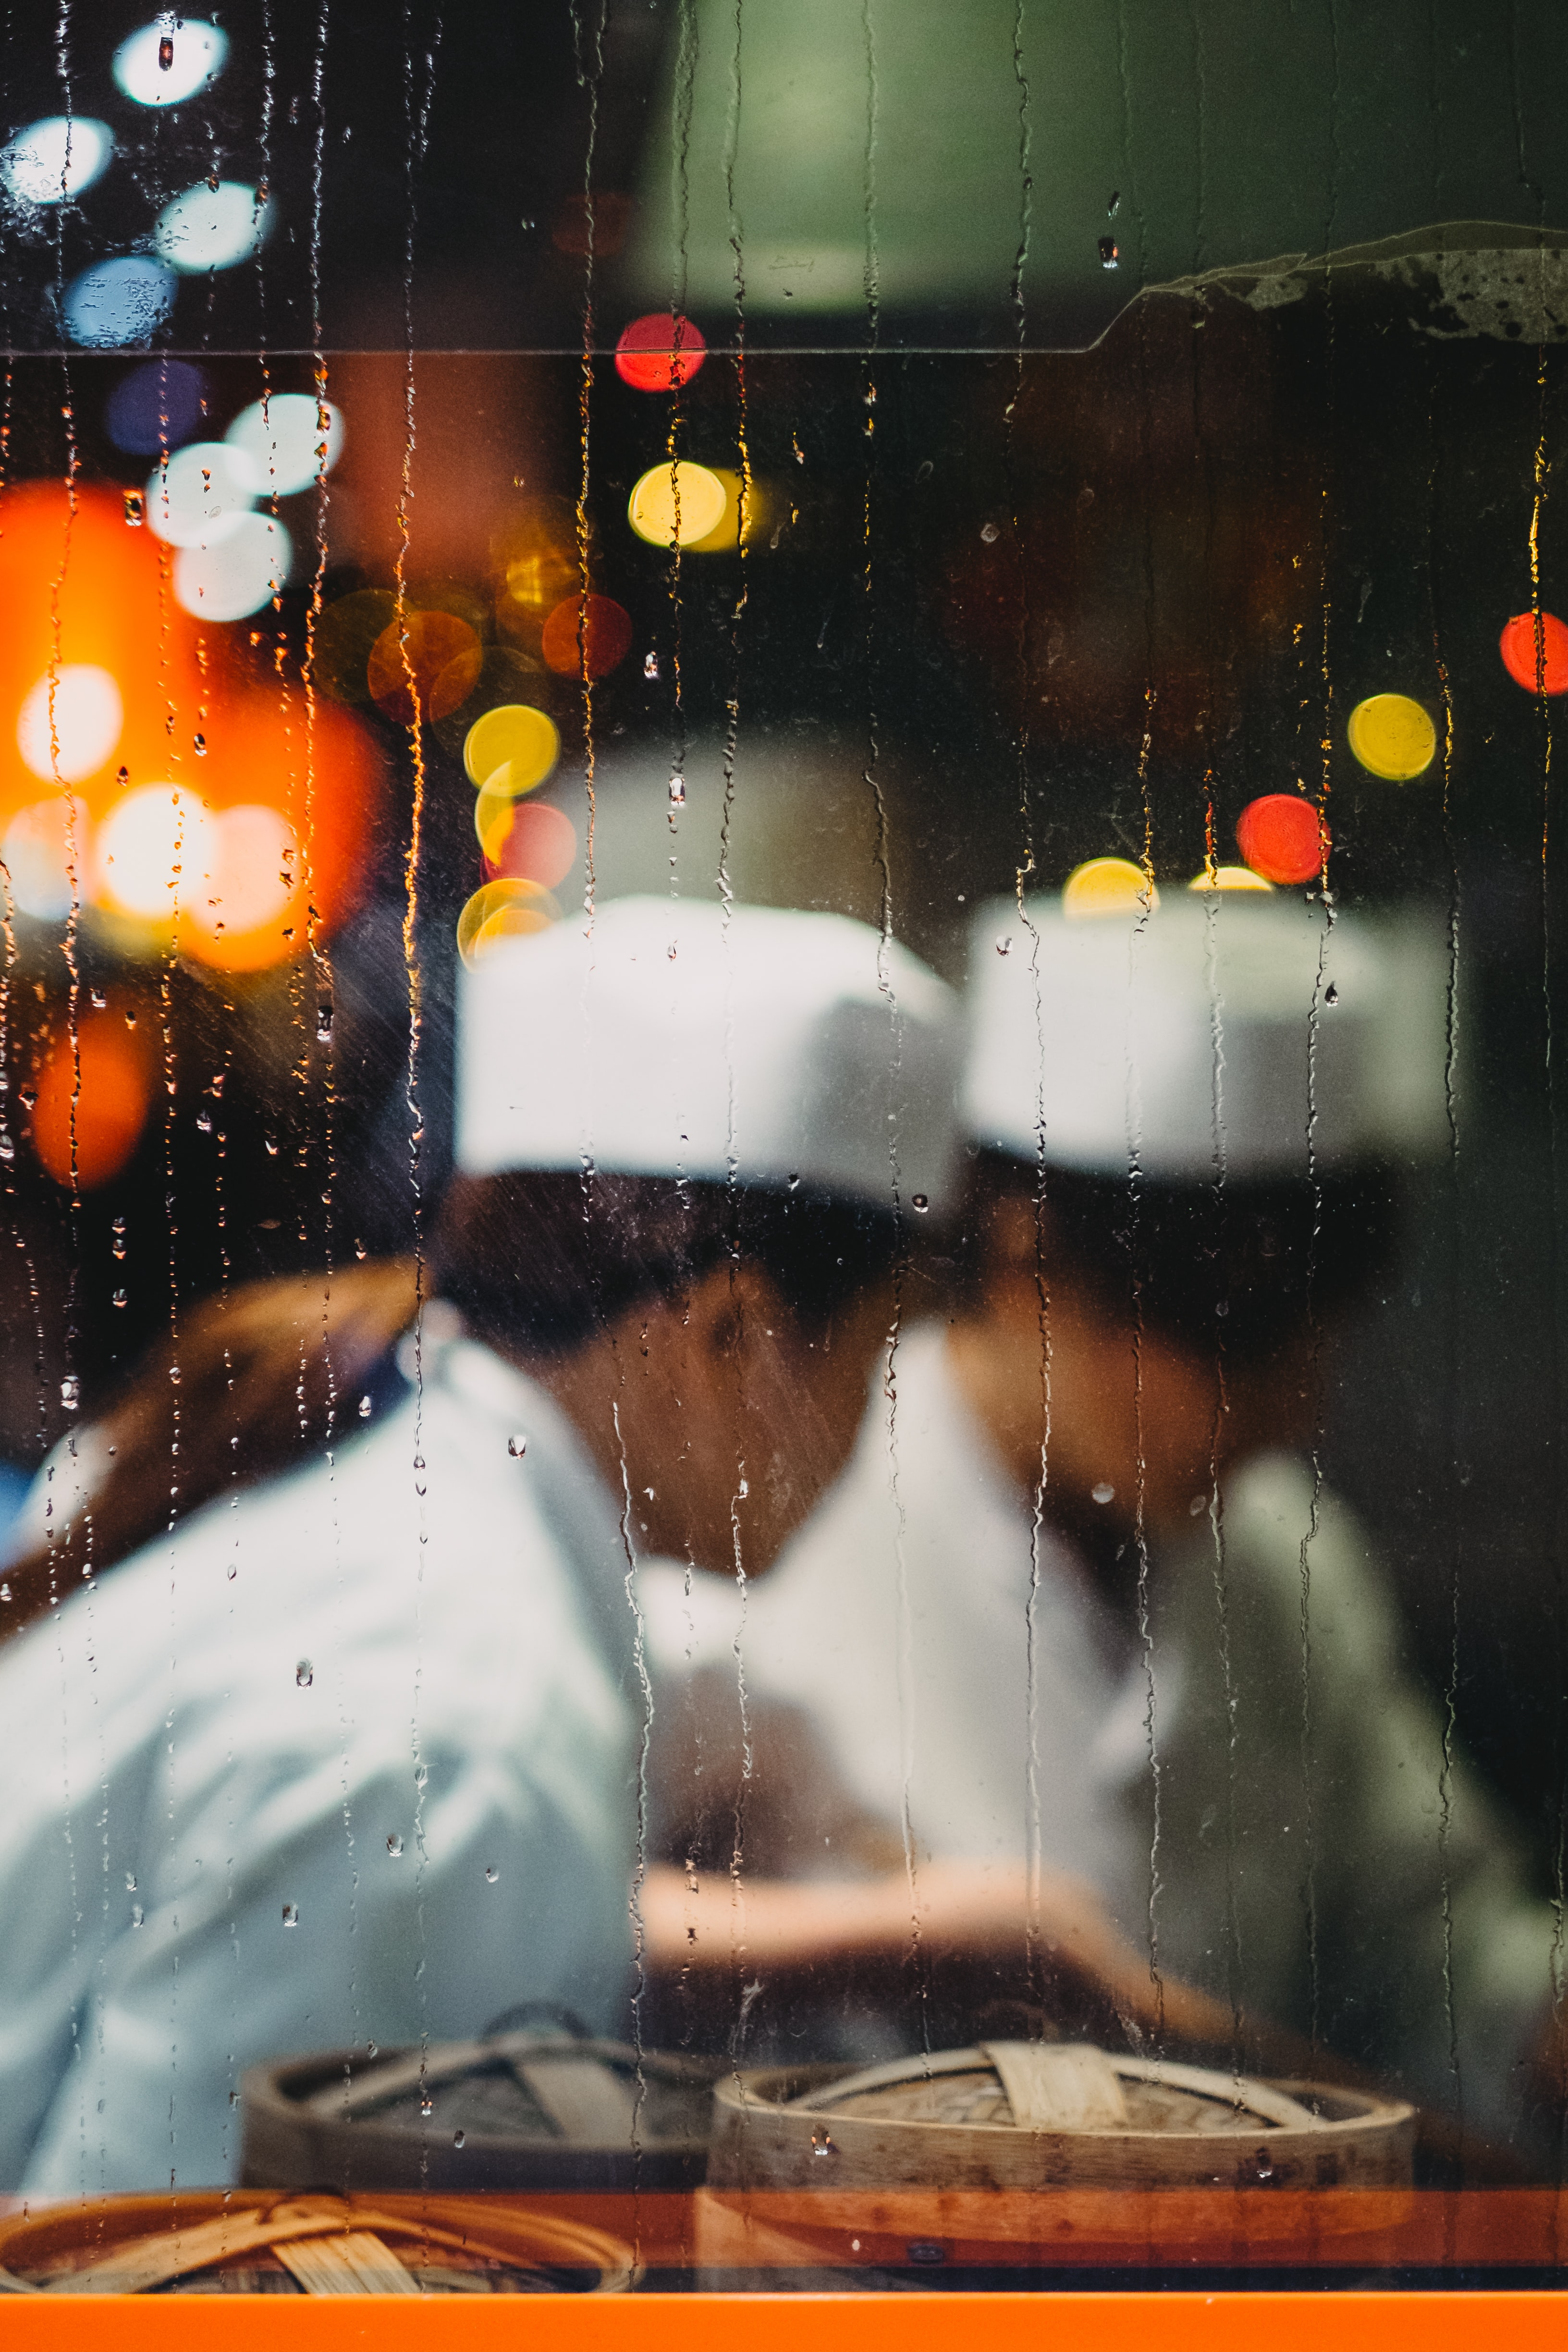 two persons in white hats taken from glass frame with waterdrops